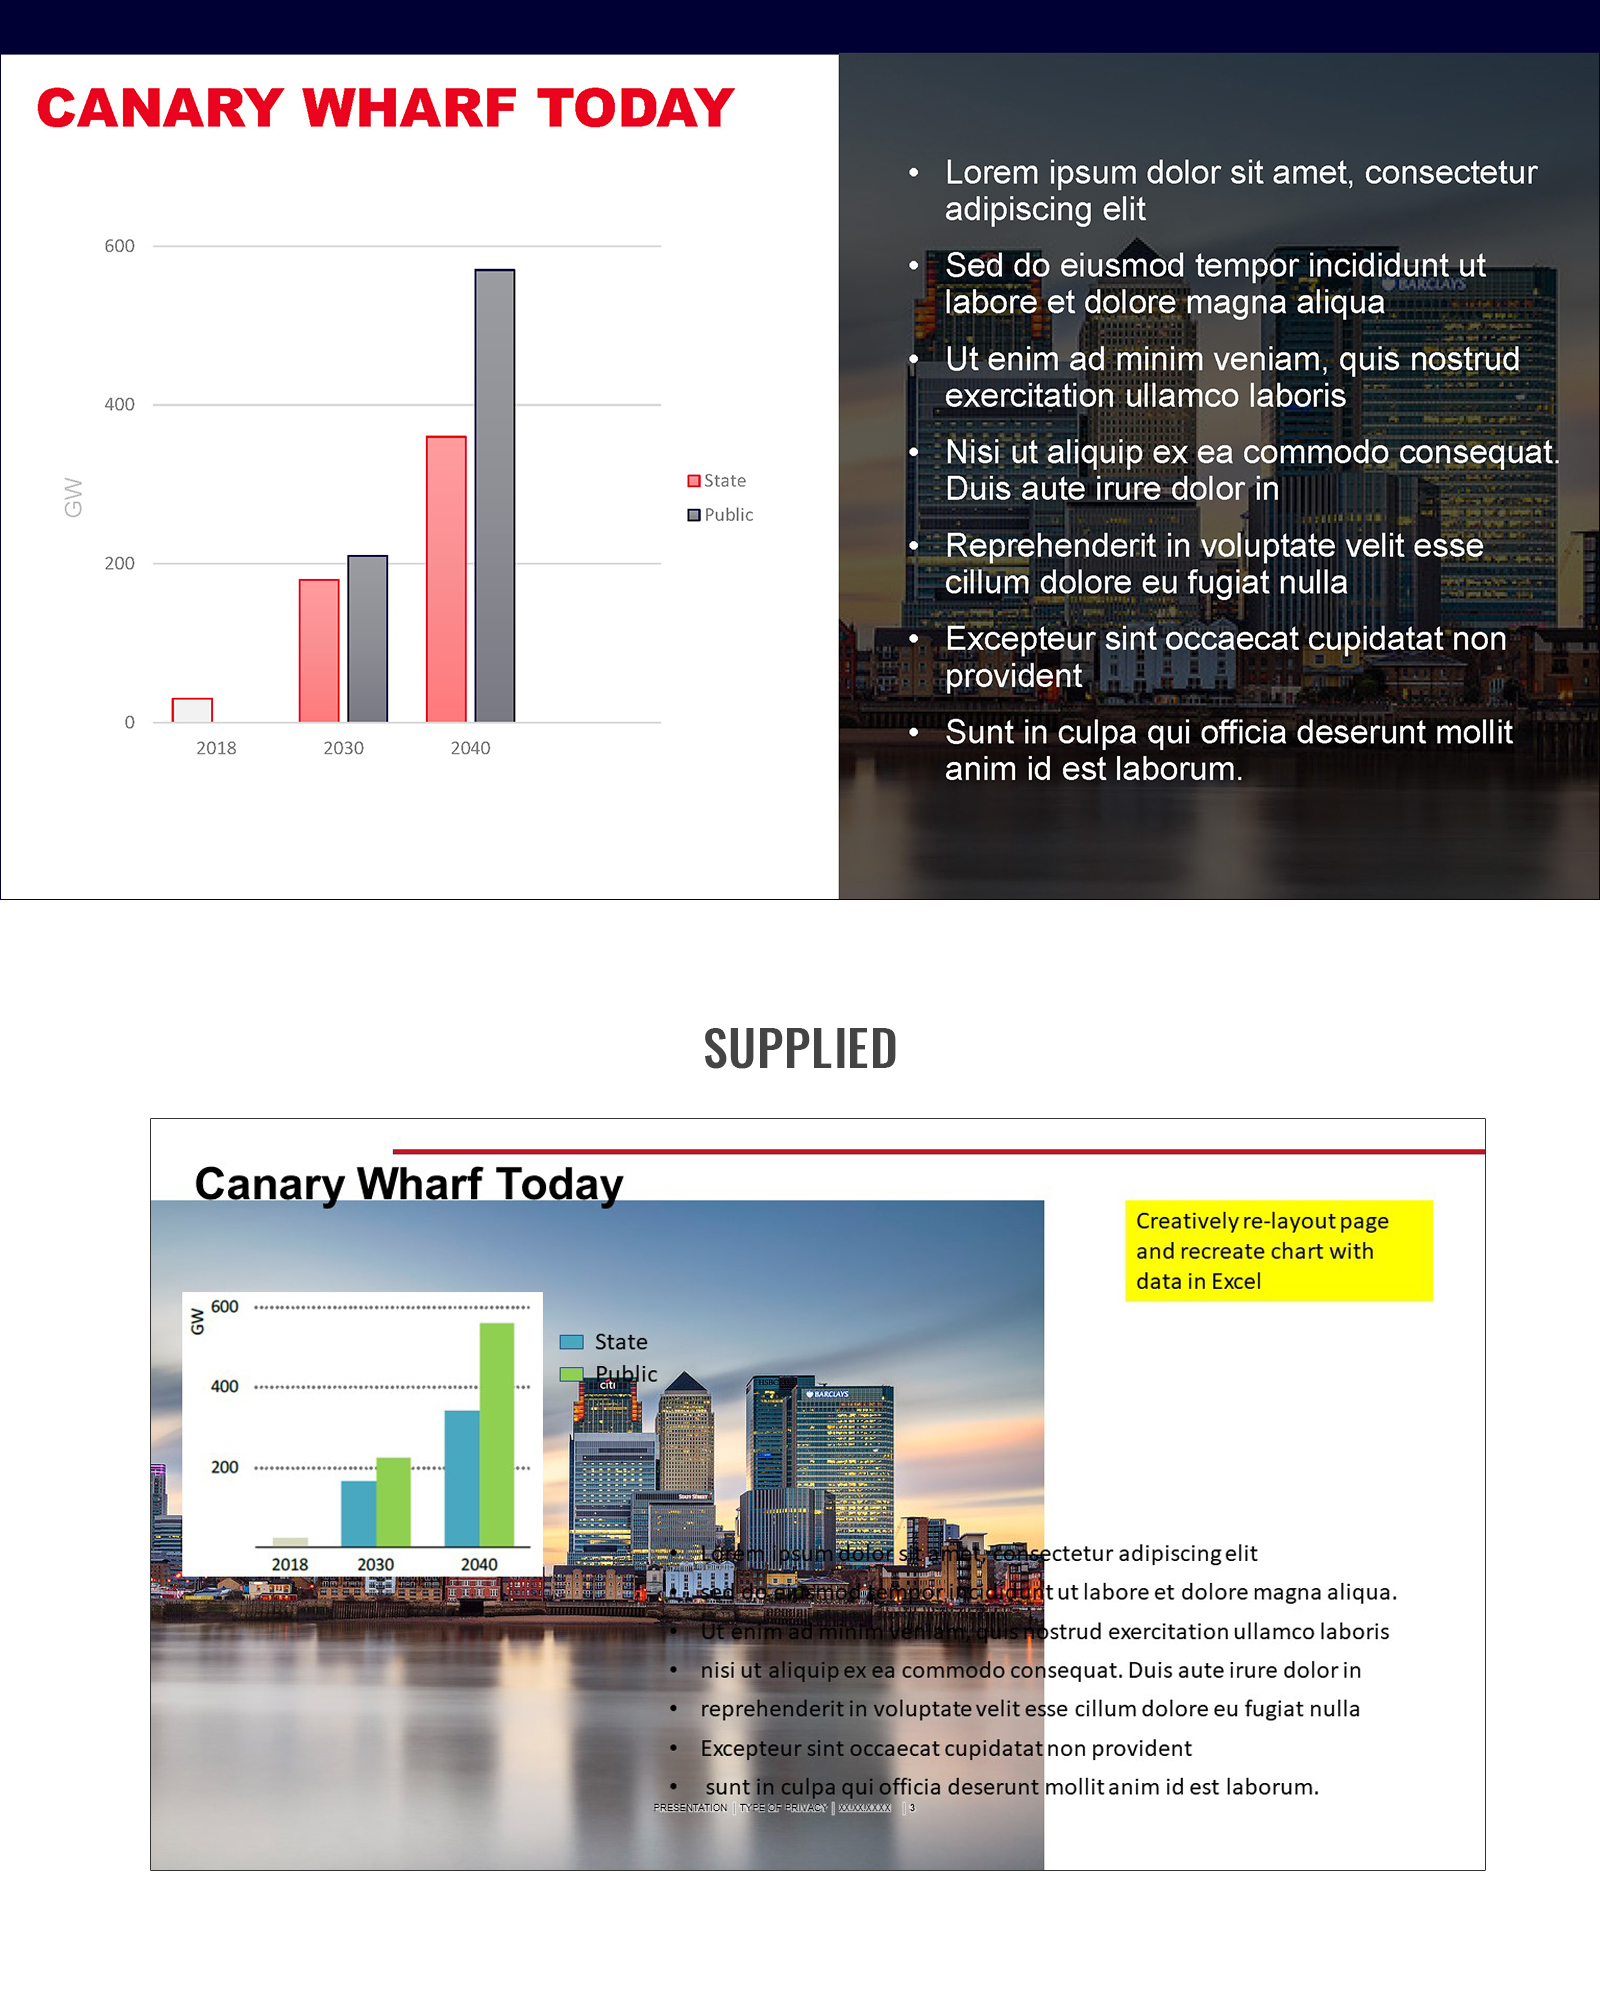 PowerPoint Presentation Design 2